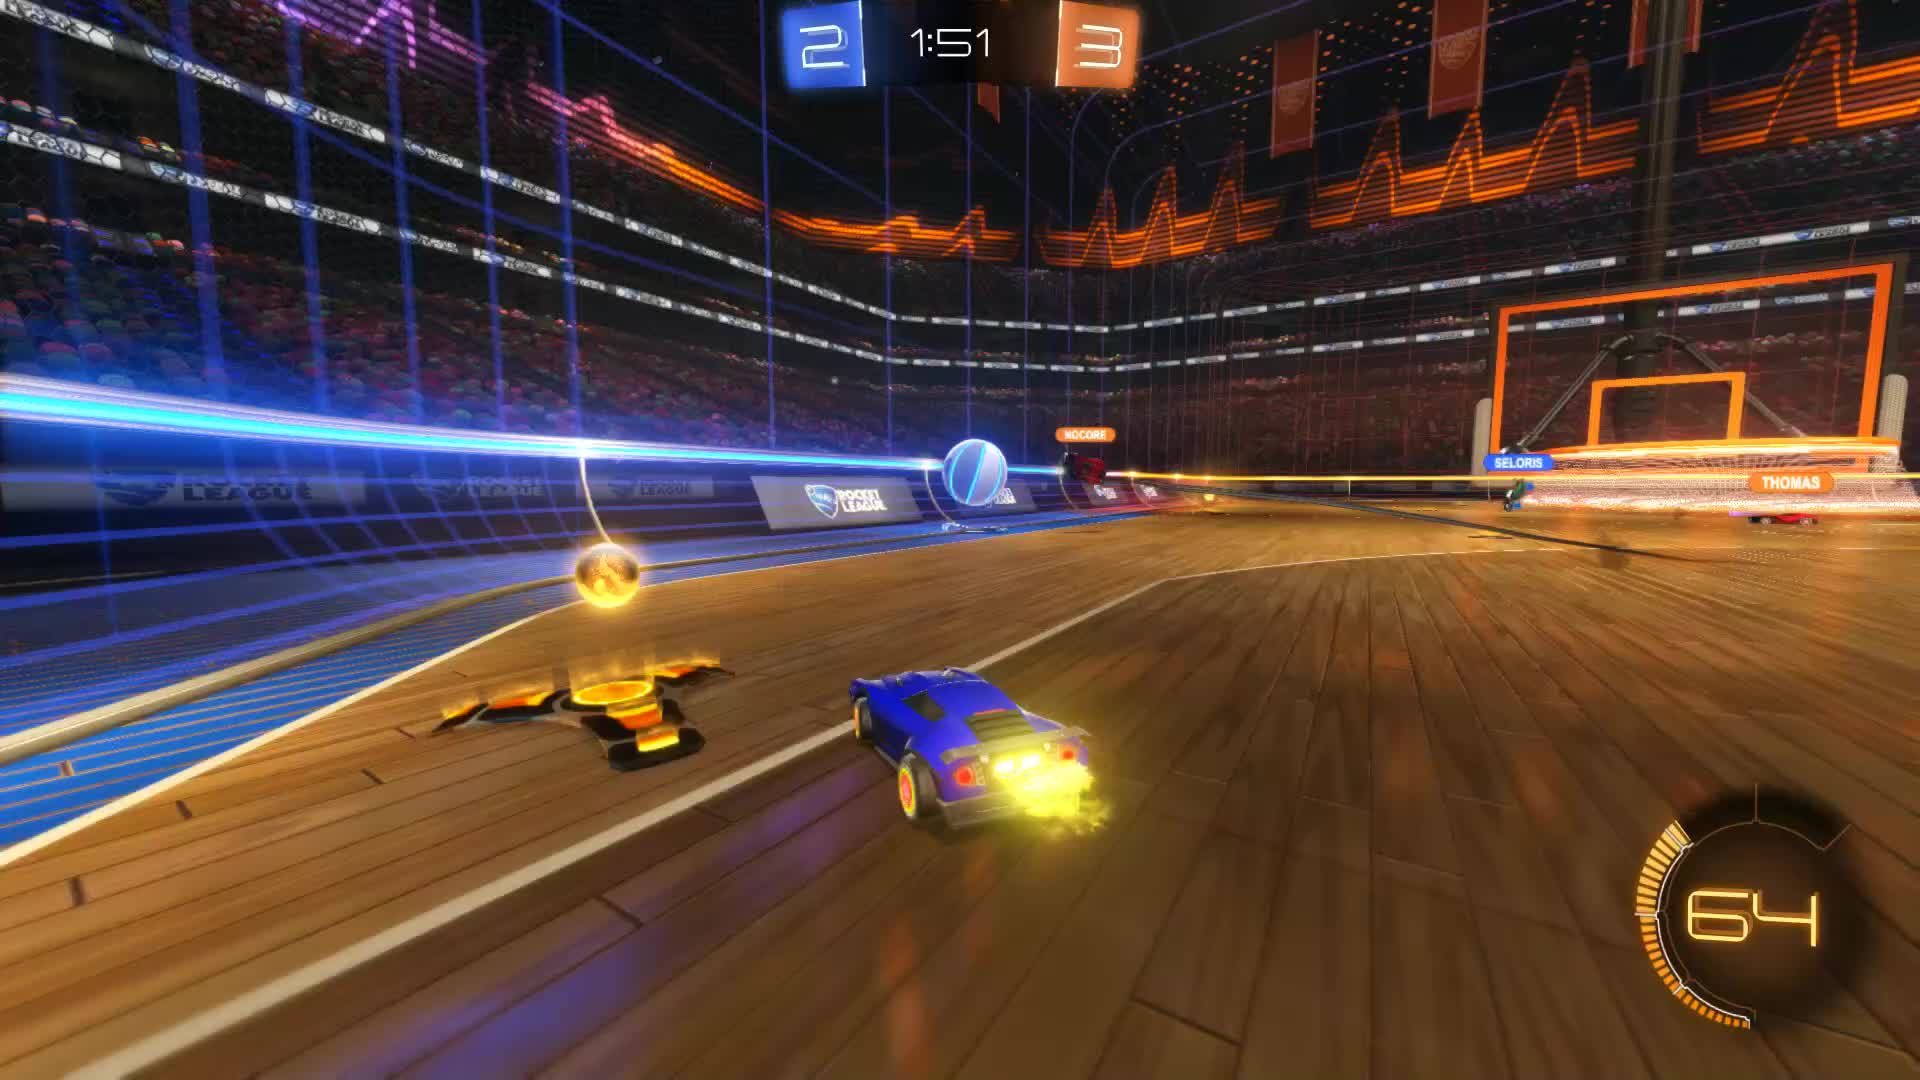 Gif Your Game, GifYourGame, Goal, Rocket League, RocketLeague, aplaa:?, Goal 6: aplaa:? GIFs